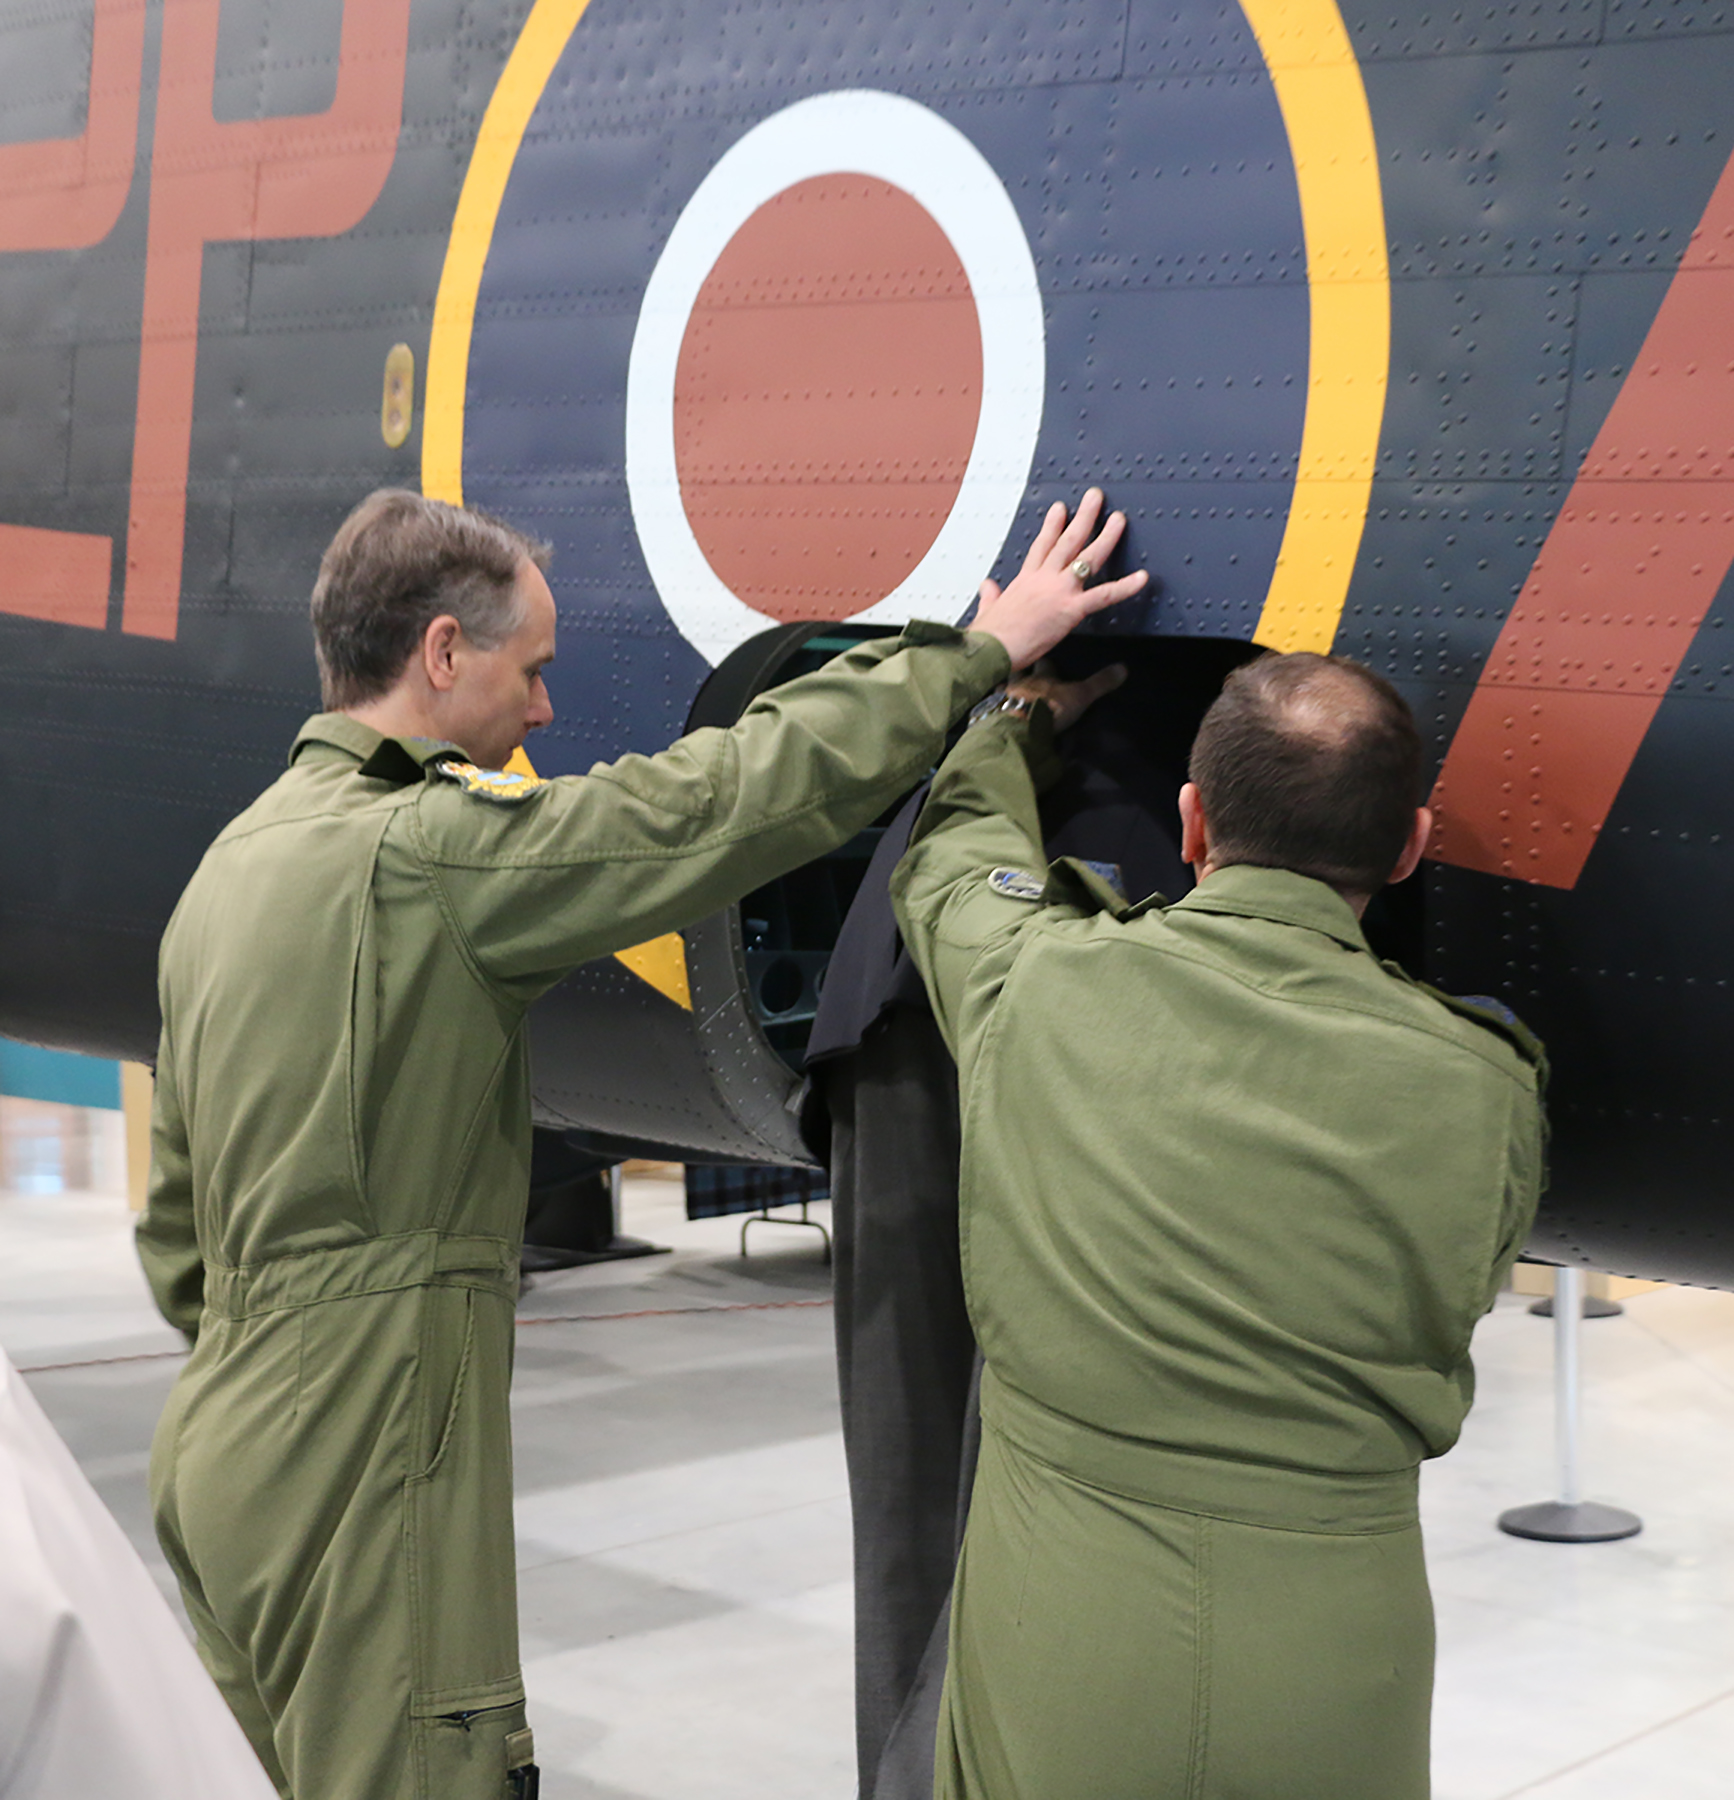 At the National Air Force Museum of Canada in Trenton, Ontario, commander of the Royal Canadian Air Force Lieutenant-General Al Meinzinger (left) lends a hand on May 15, 2019, as Flight Lieutenant (retired) Stuart Vallières climbs into a Handley Page Halifax bomber for the first time since he was shot down in one over occupied Europe in 1944, and taken prisoner. PHOTO: Makala Chapman